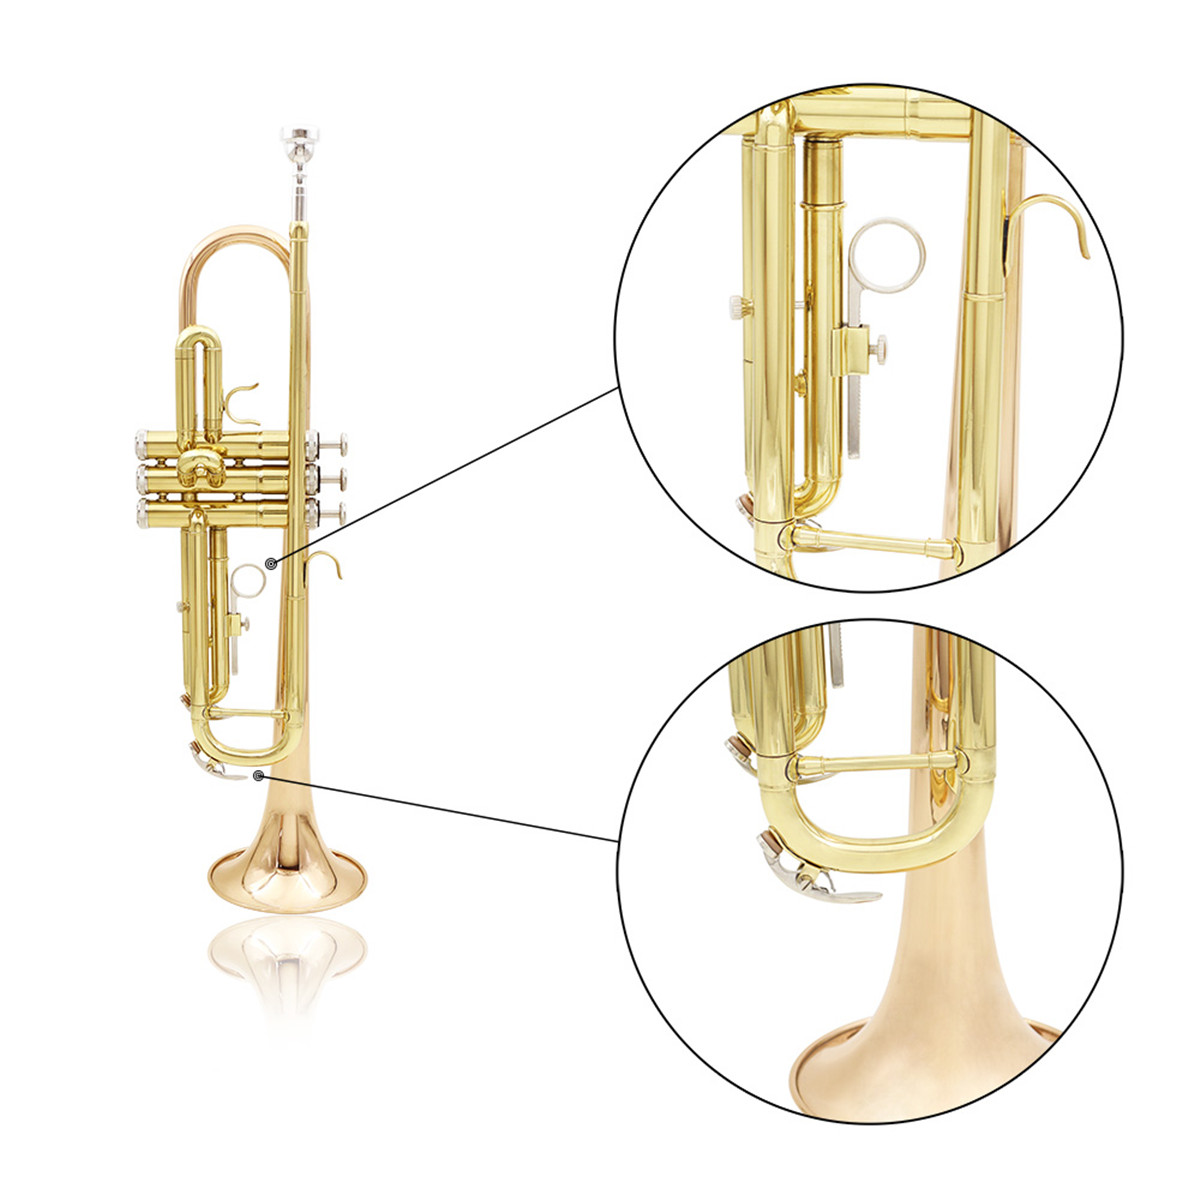 SLADE Gold Brass Bb Trumpet Kit Phosphorus-copper Trumpet Mouth for Beginners School Band with Carring Case